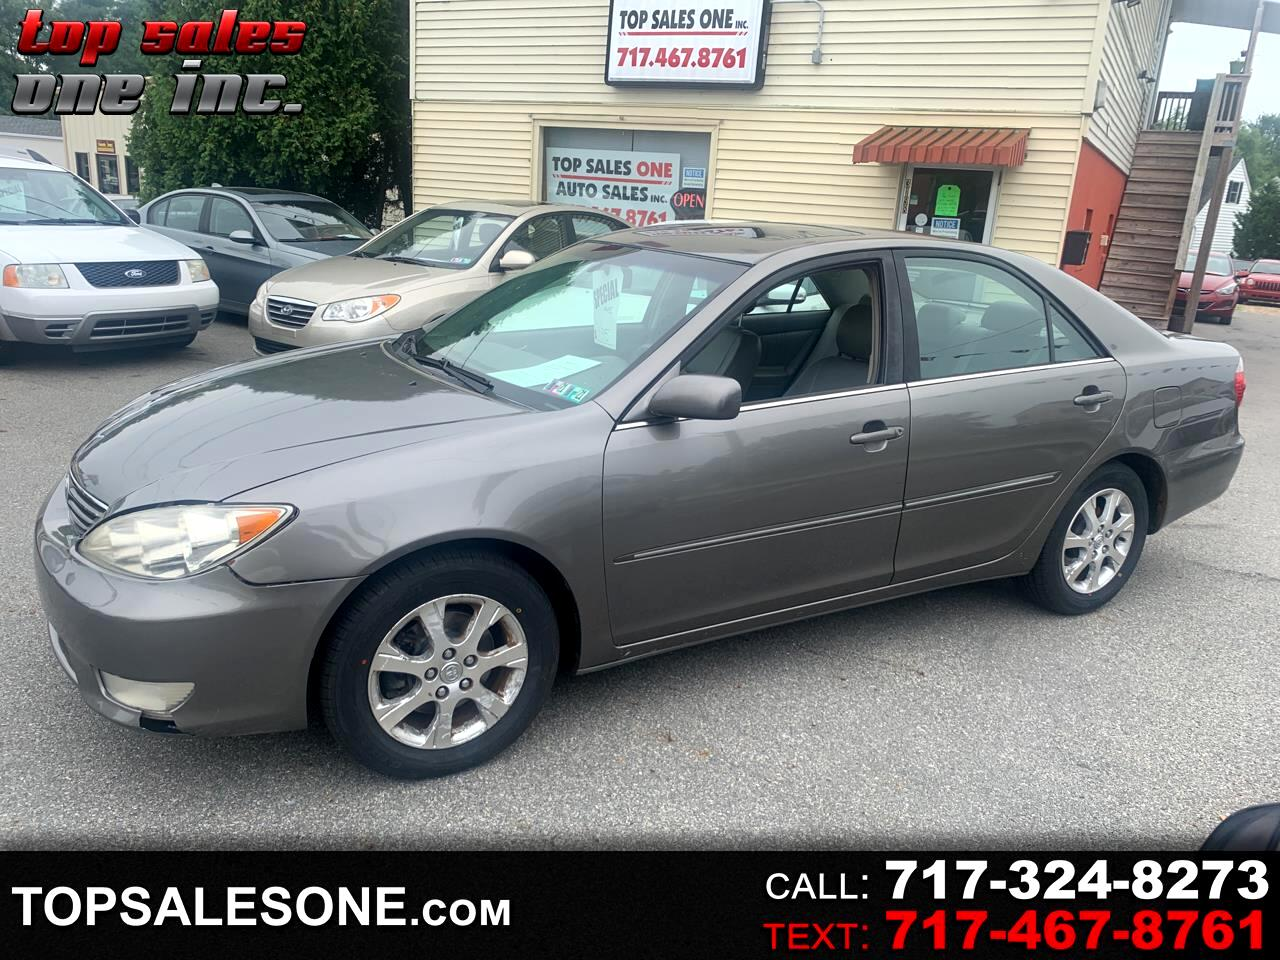 Toyota Camry 4dr Sdn I4 Auto XLE (Natl) 2006